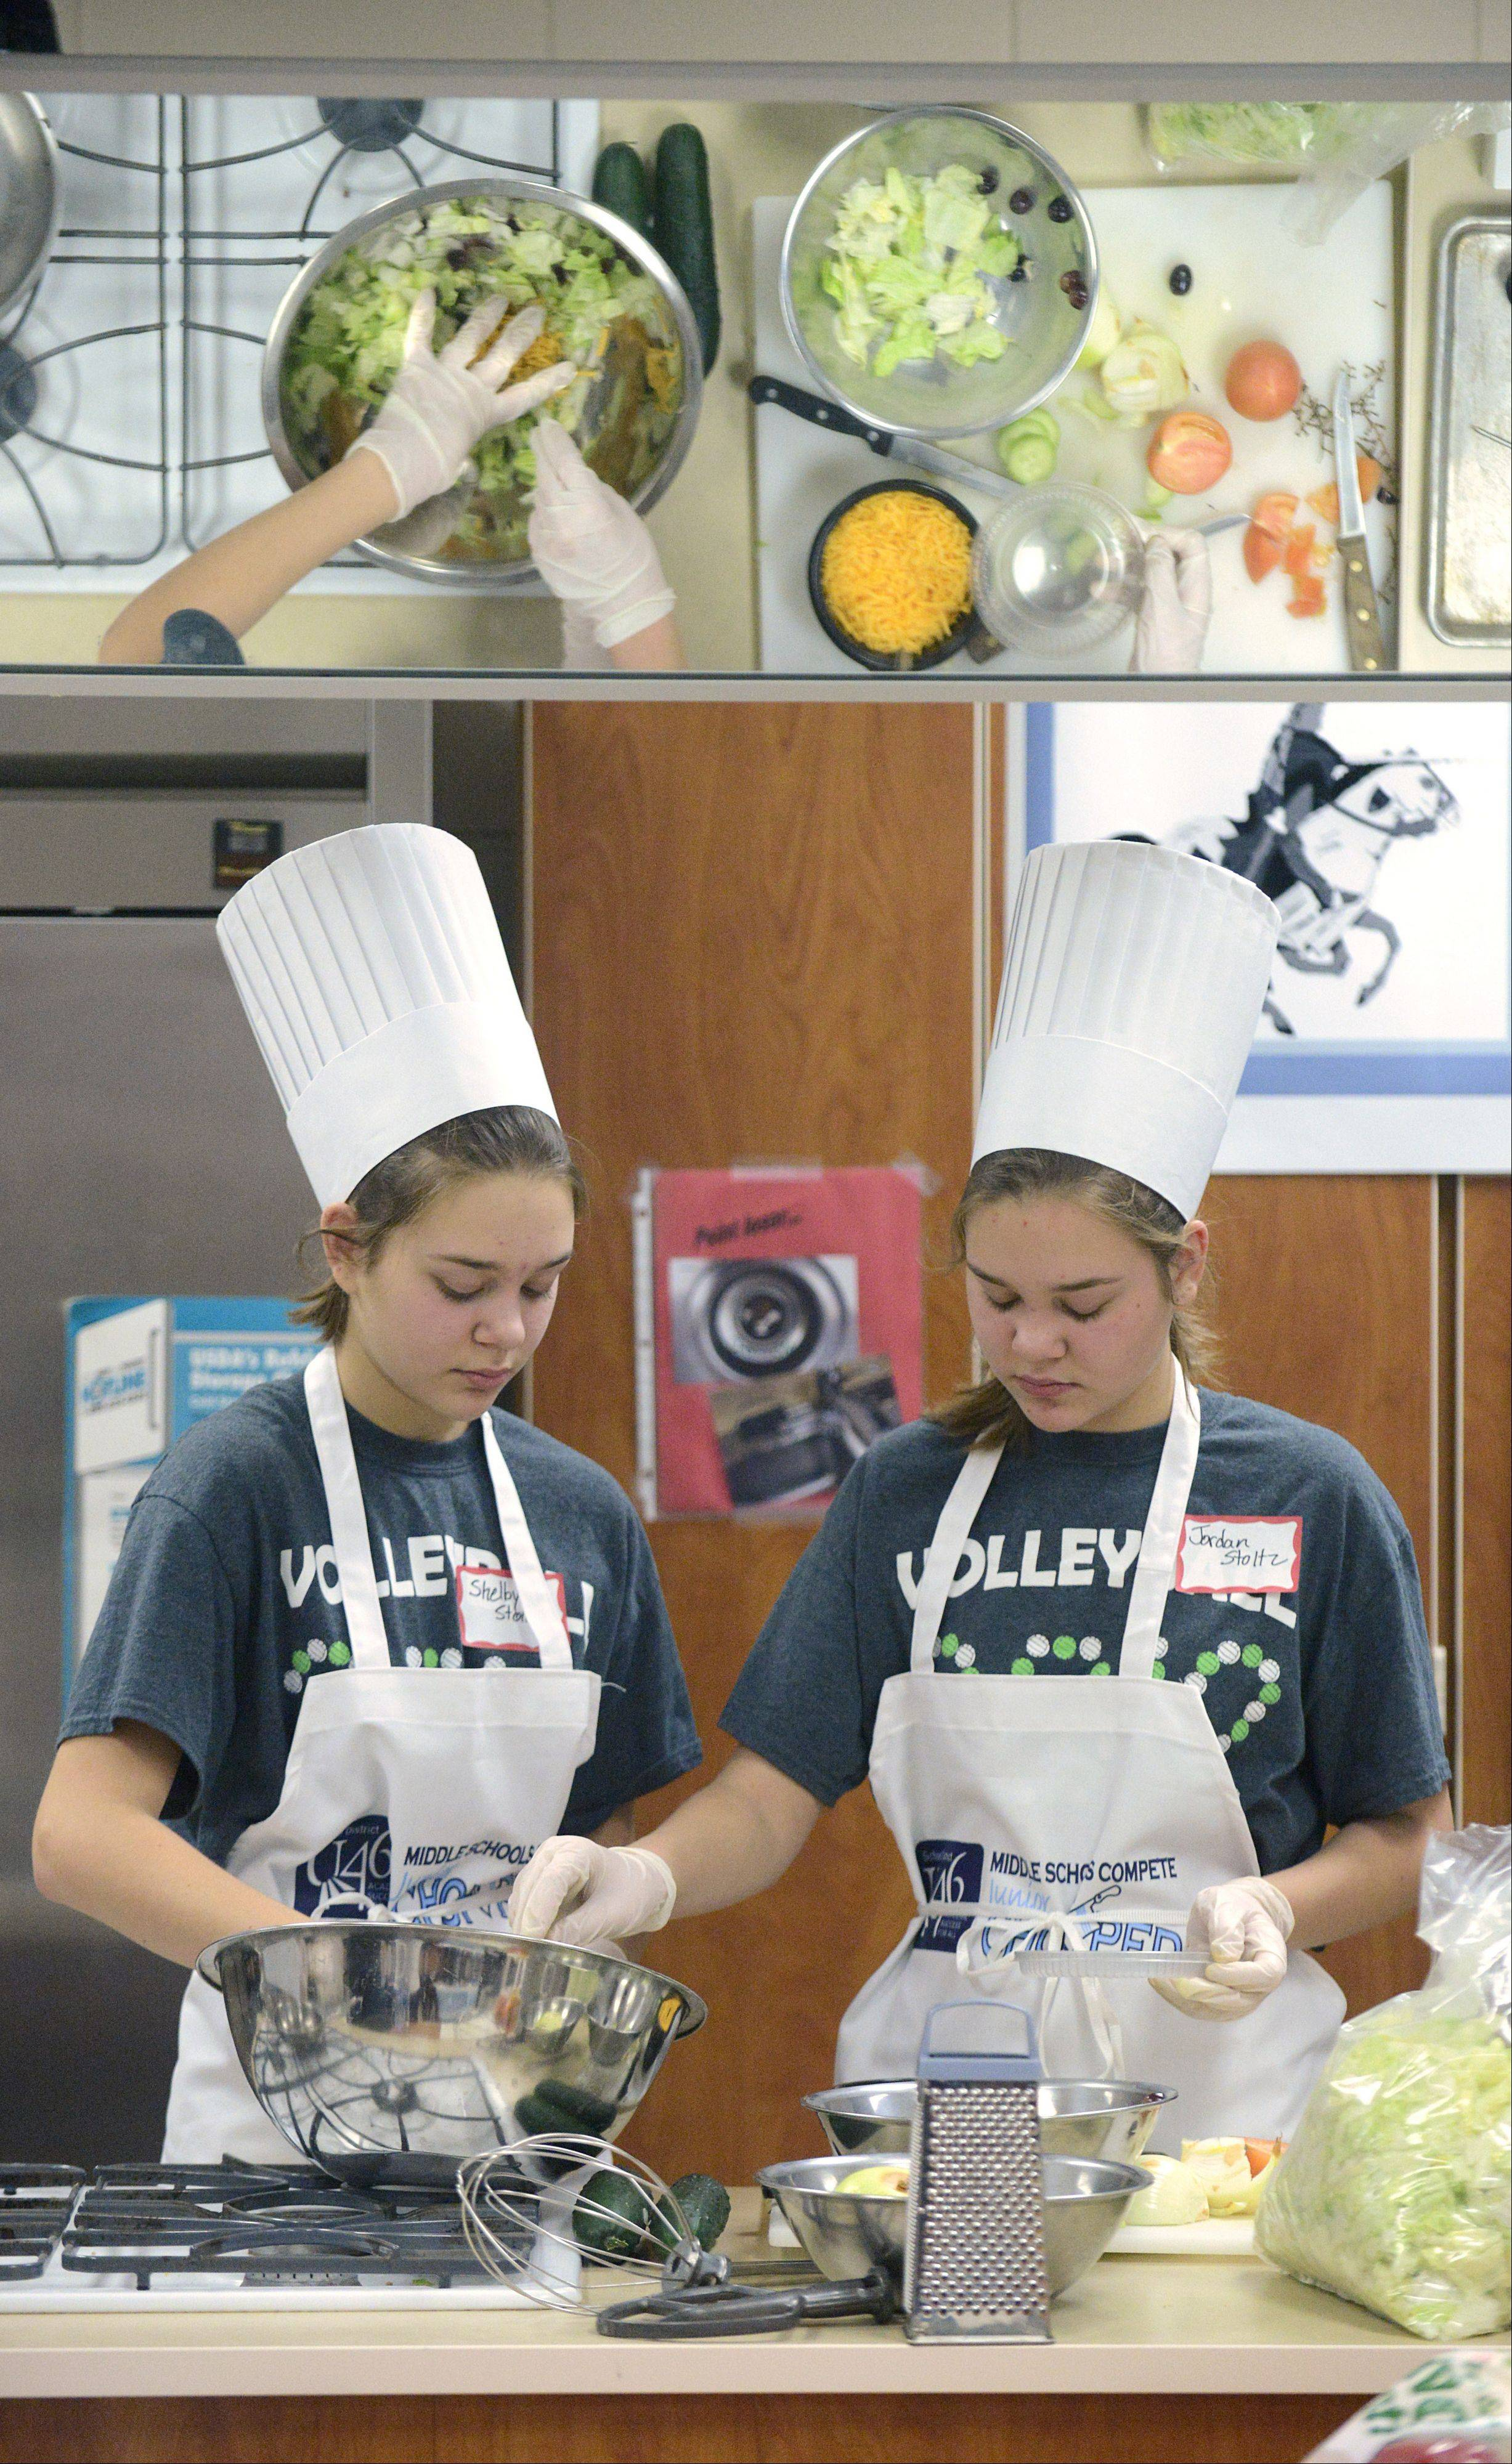 Twin sisters Shelby and Jordan Stolz, 13, of Elgin work on their team's lunch dish in the final round of the Junior Chopped competition Saturday. The girls, along with teammate Allison Densmore, 13, of Hoffman Estates, were on the Cupcakes team from Larsen Middle School.